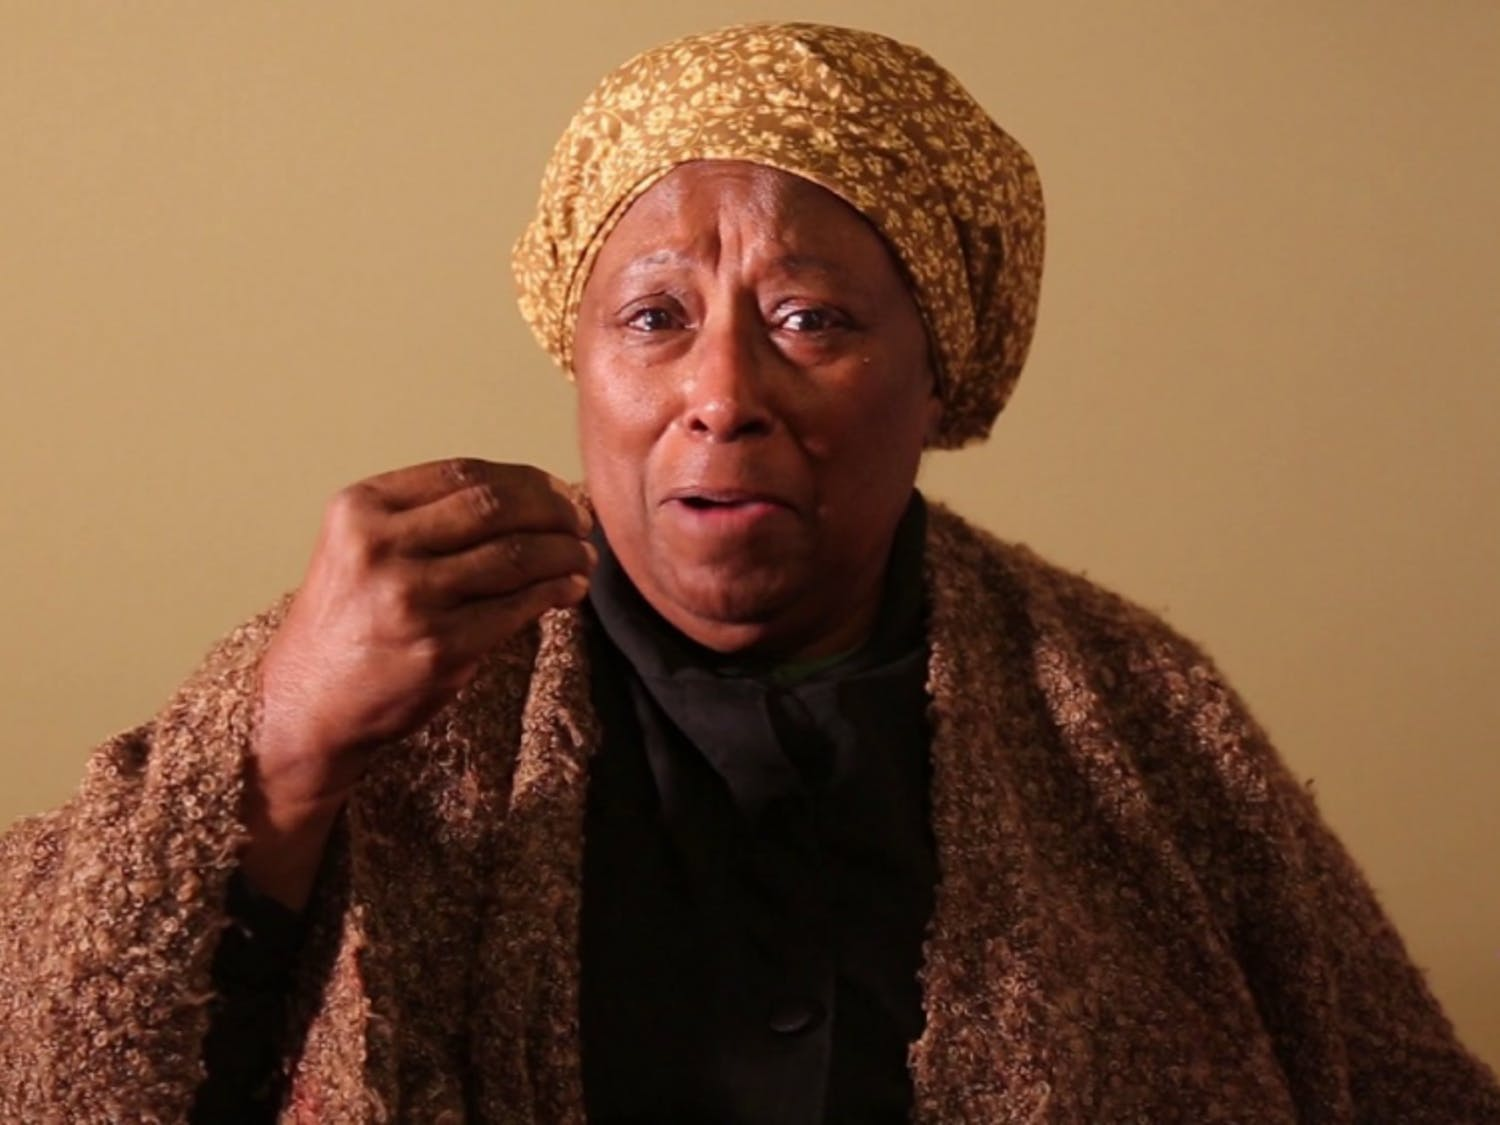 Diane Faison is an activist and artist. Courtesy of Christopher Hall.